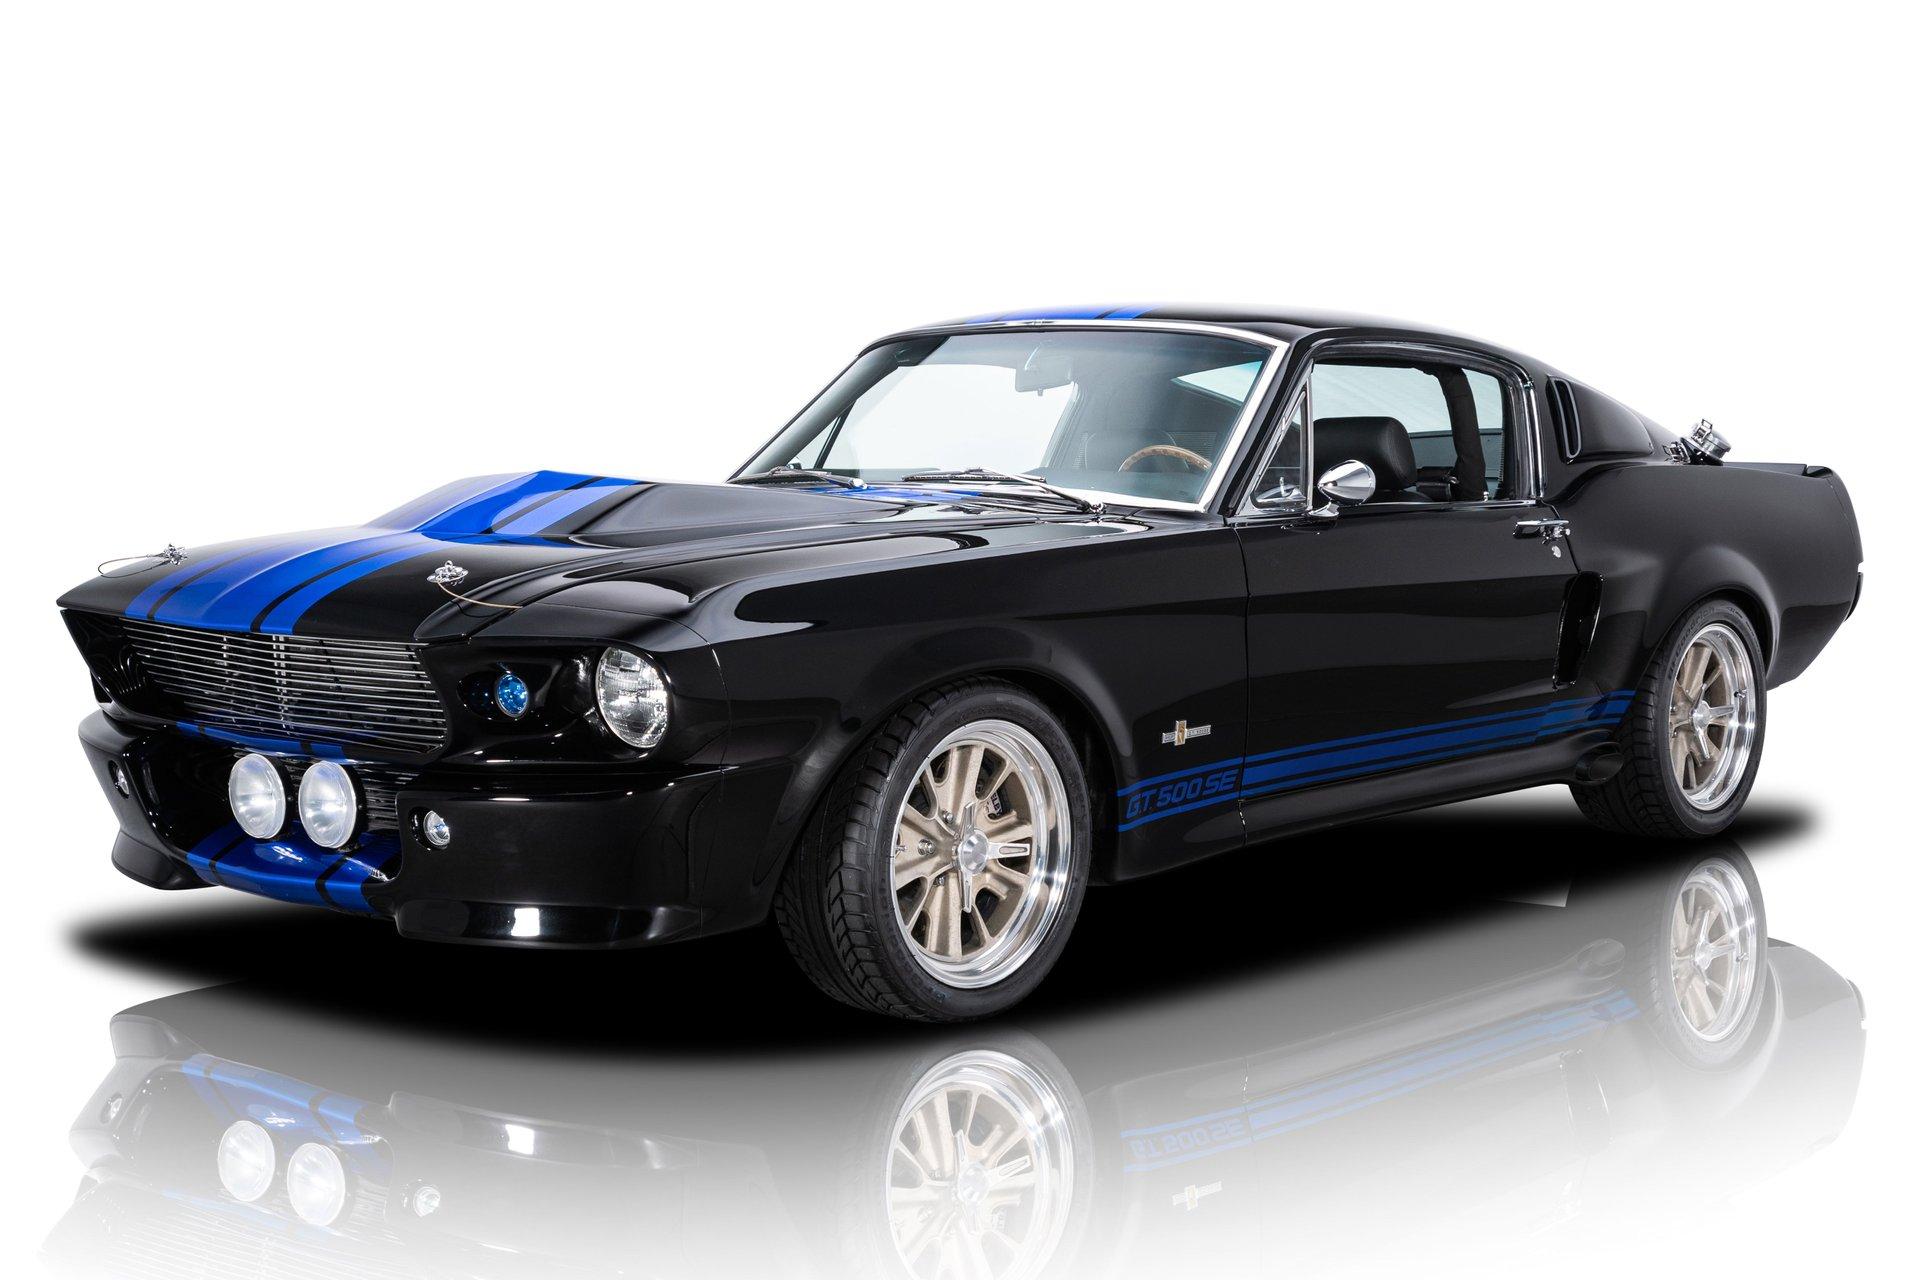 136490 1967 Ford Mustang Rk Motors Classic Cars And Muscle Cars For Sale